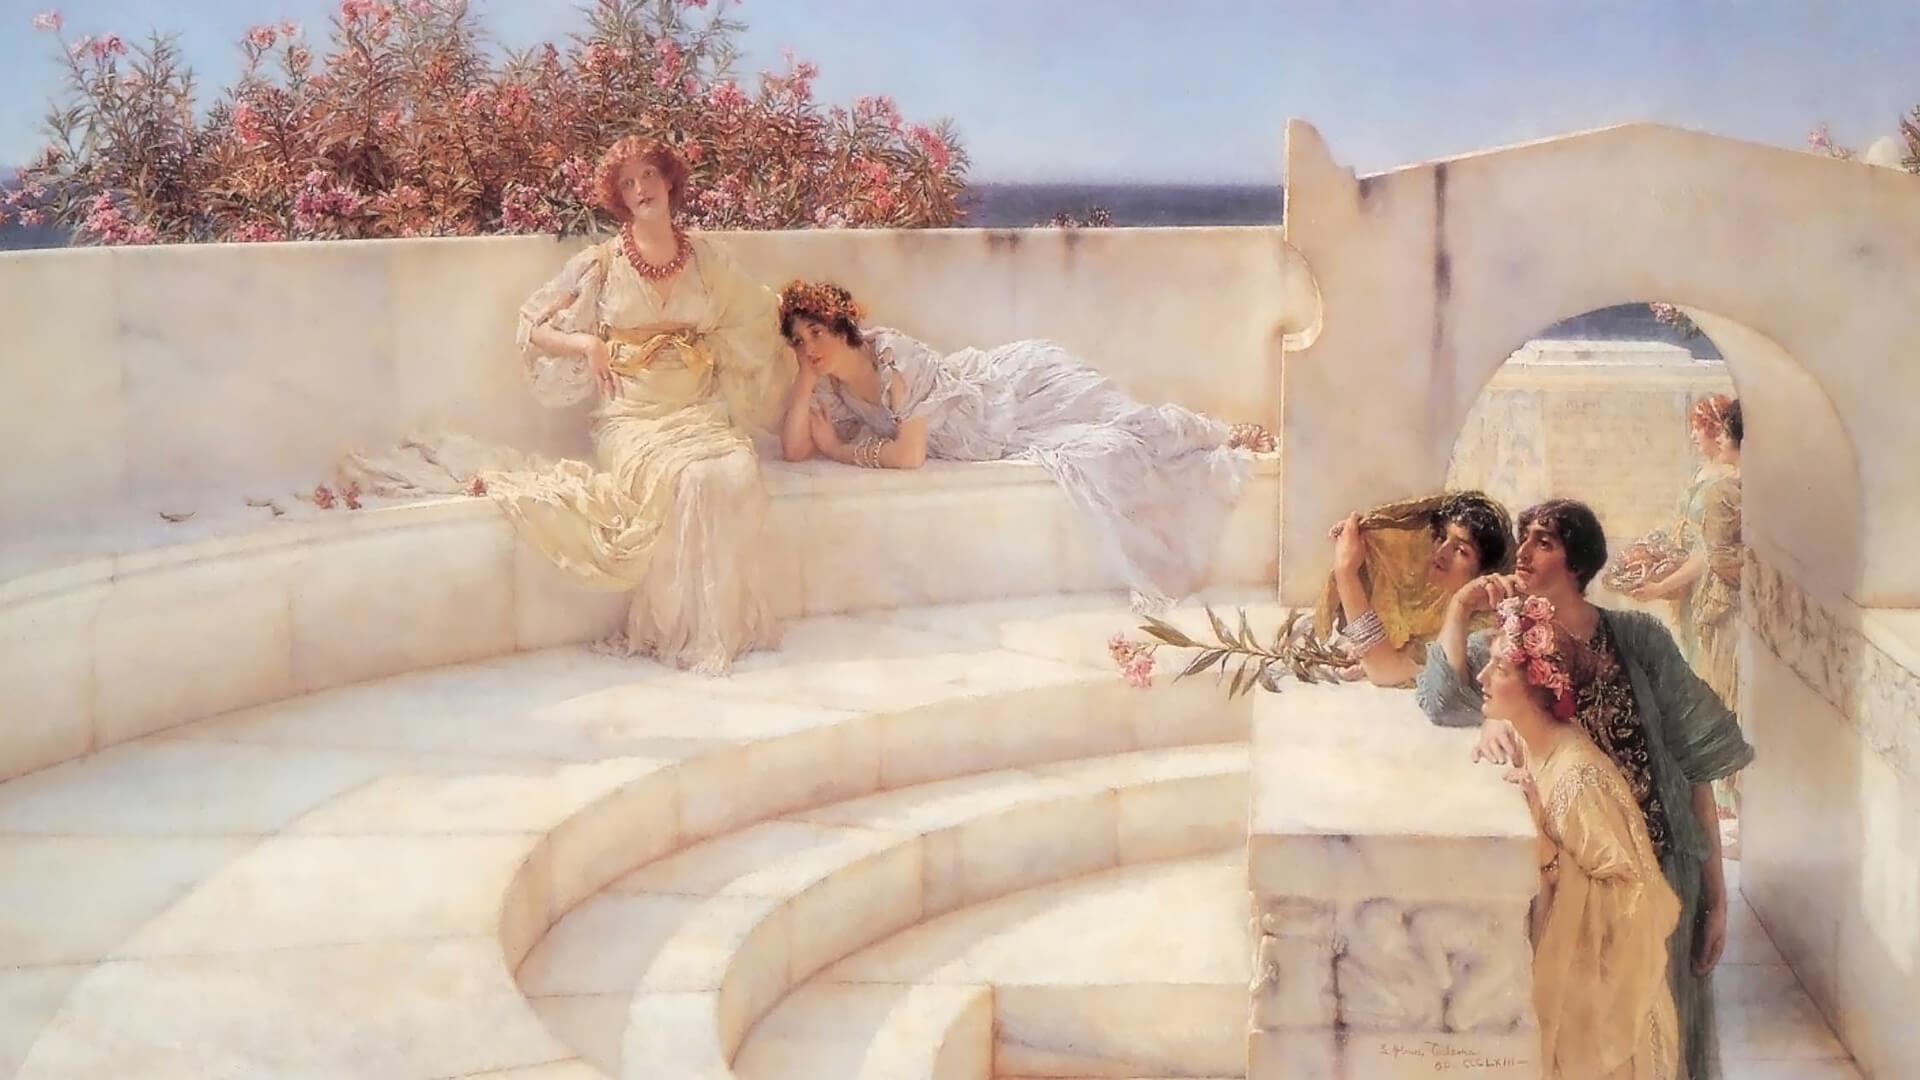 Lawrence Alma-Tadema_Under the Roof of Blue Ionian Weather_1920x1080